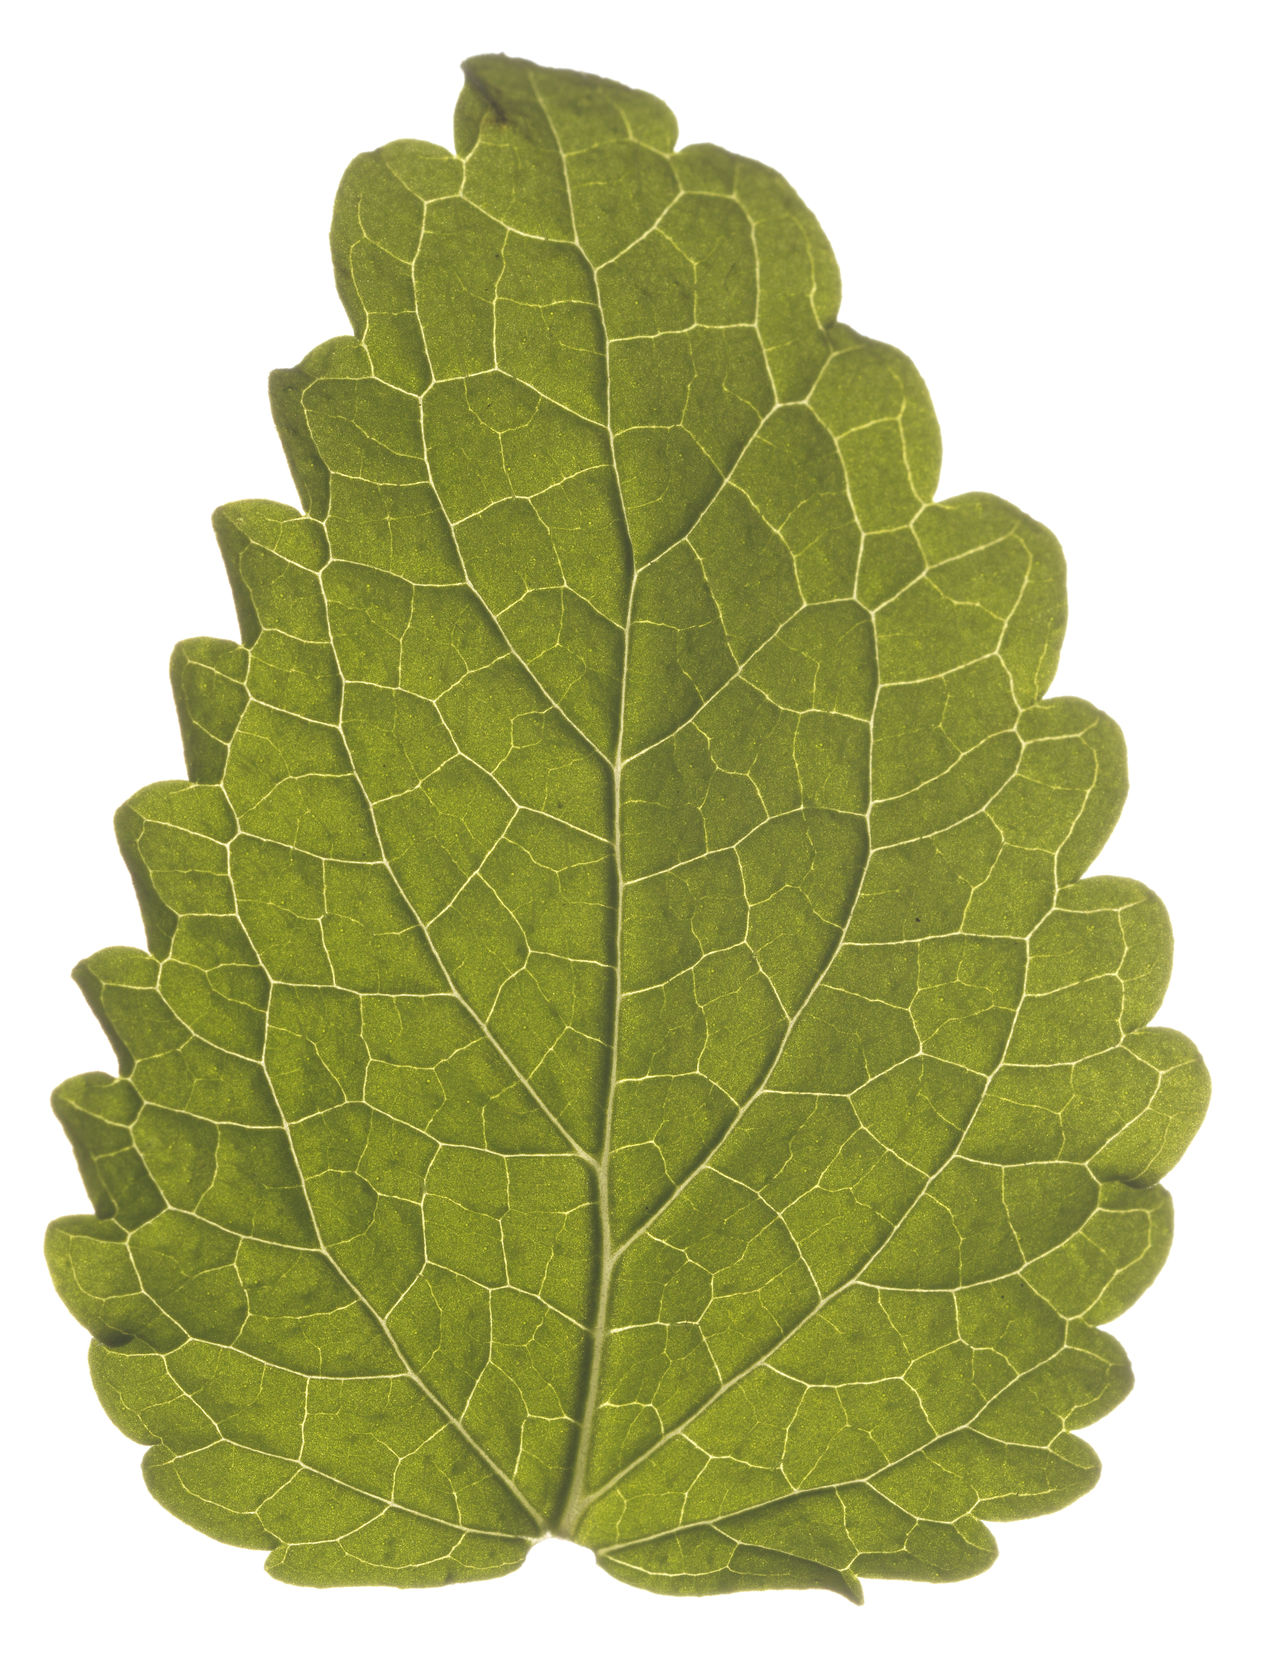 Leaf White Background Studio Shot Close-up Nature Environmental Conservation Social Issues No People Freshness Food Healthy Eating Studiophotography